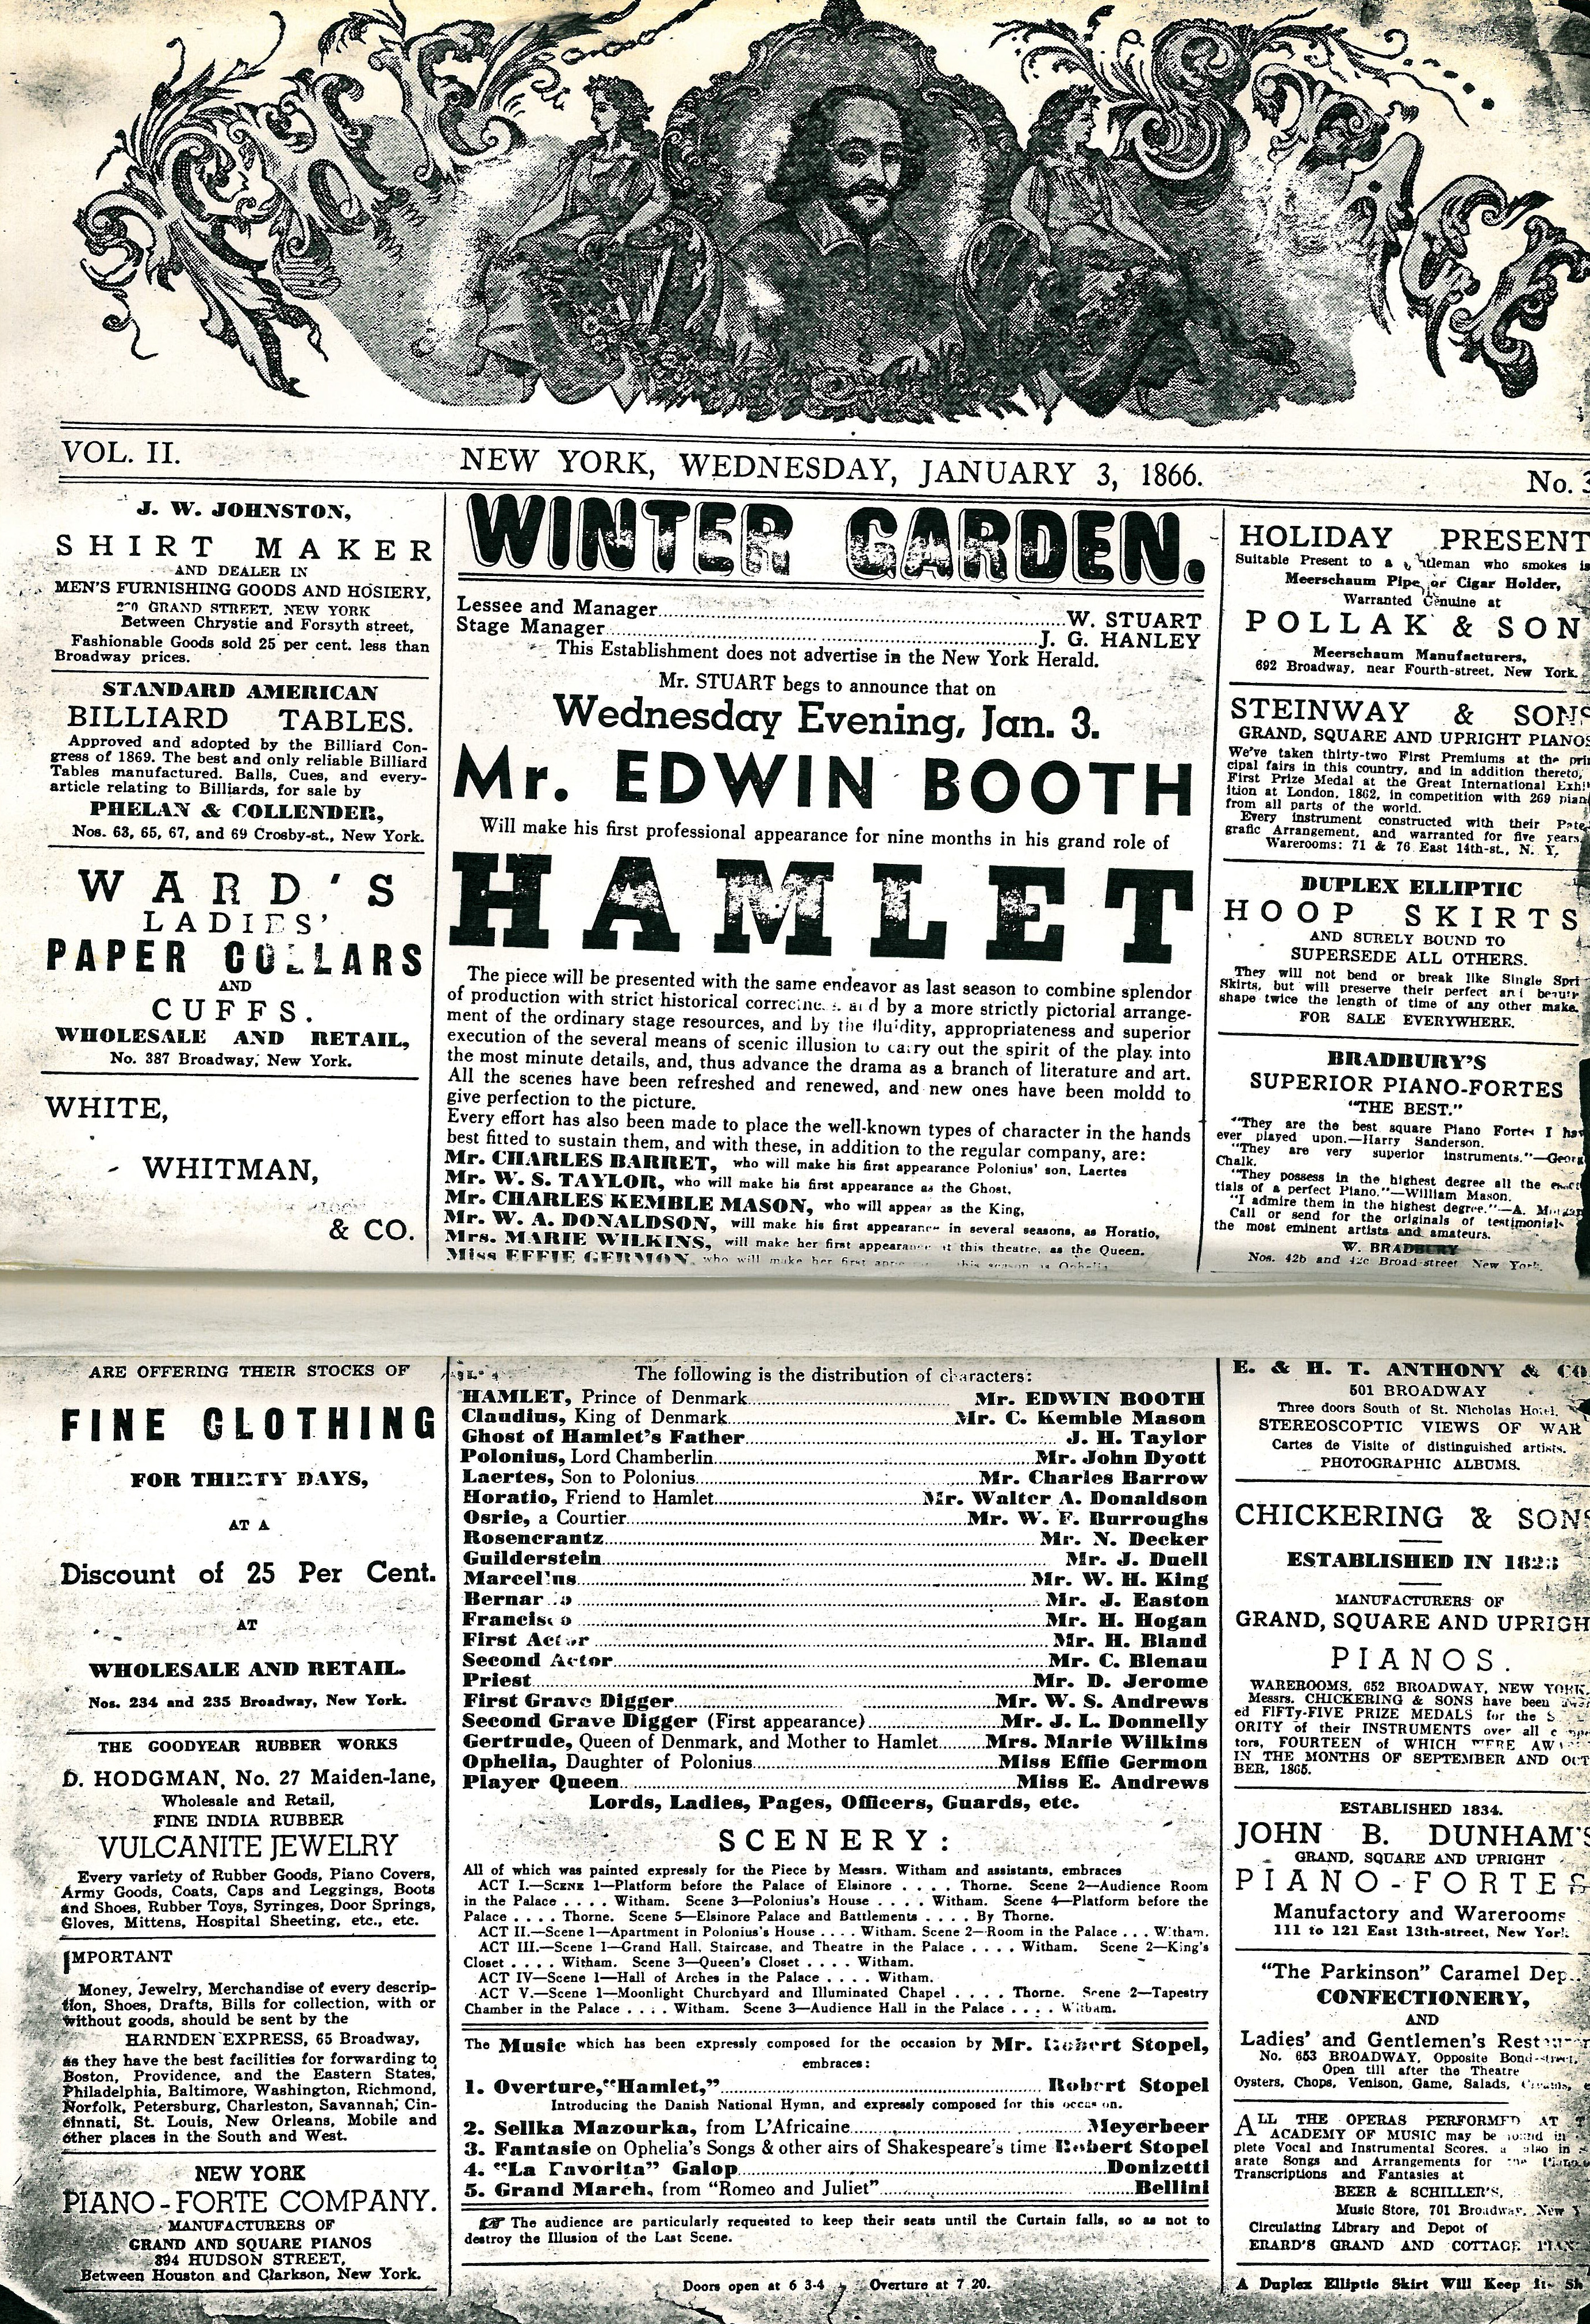 glimpse back through the history of playbill playbill u003d 0 of 25